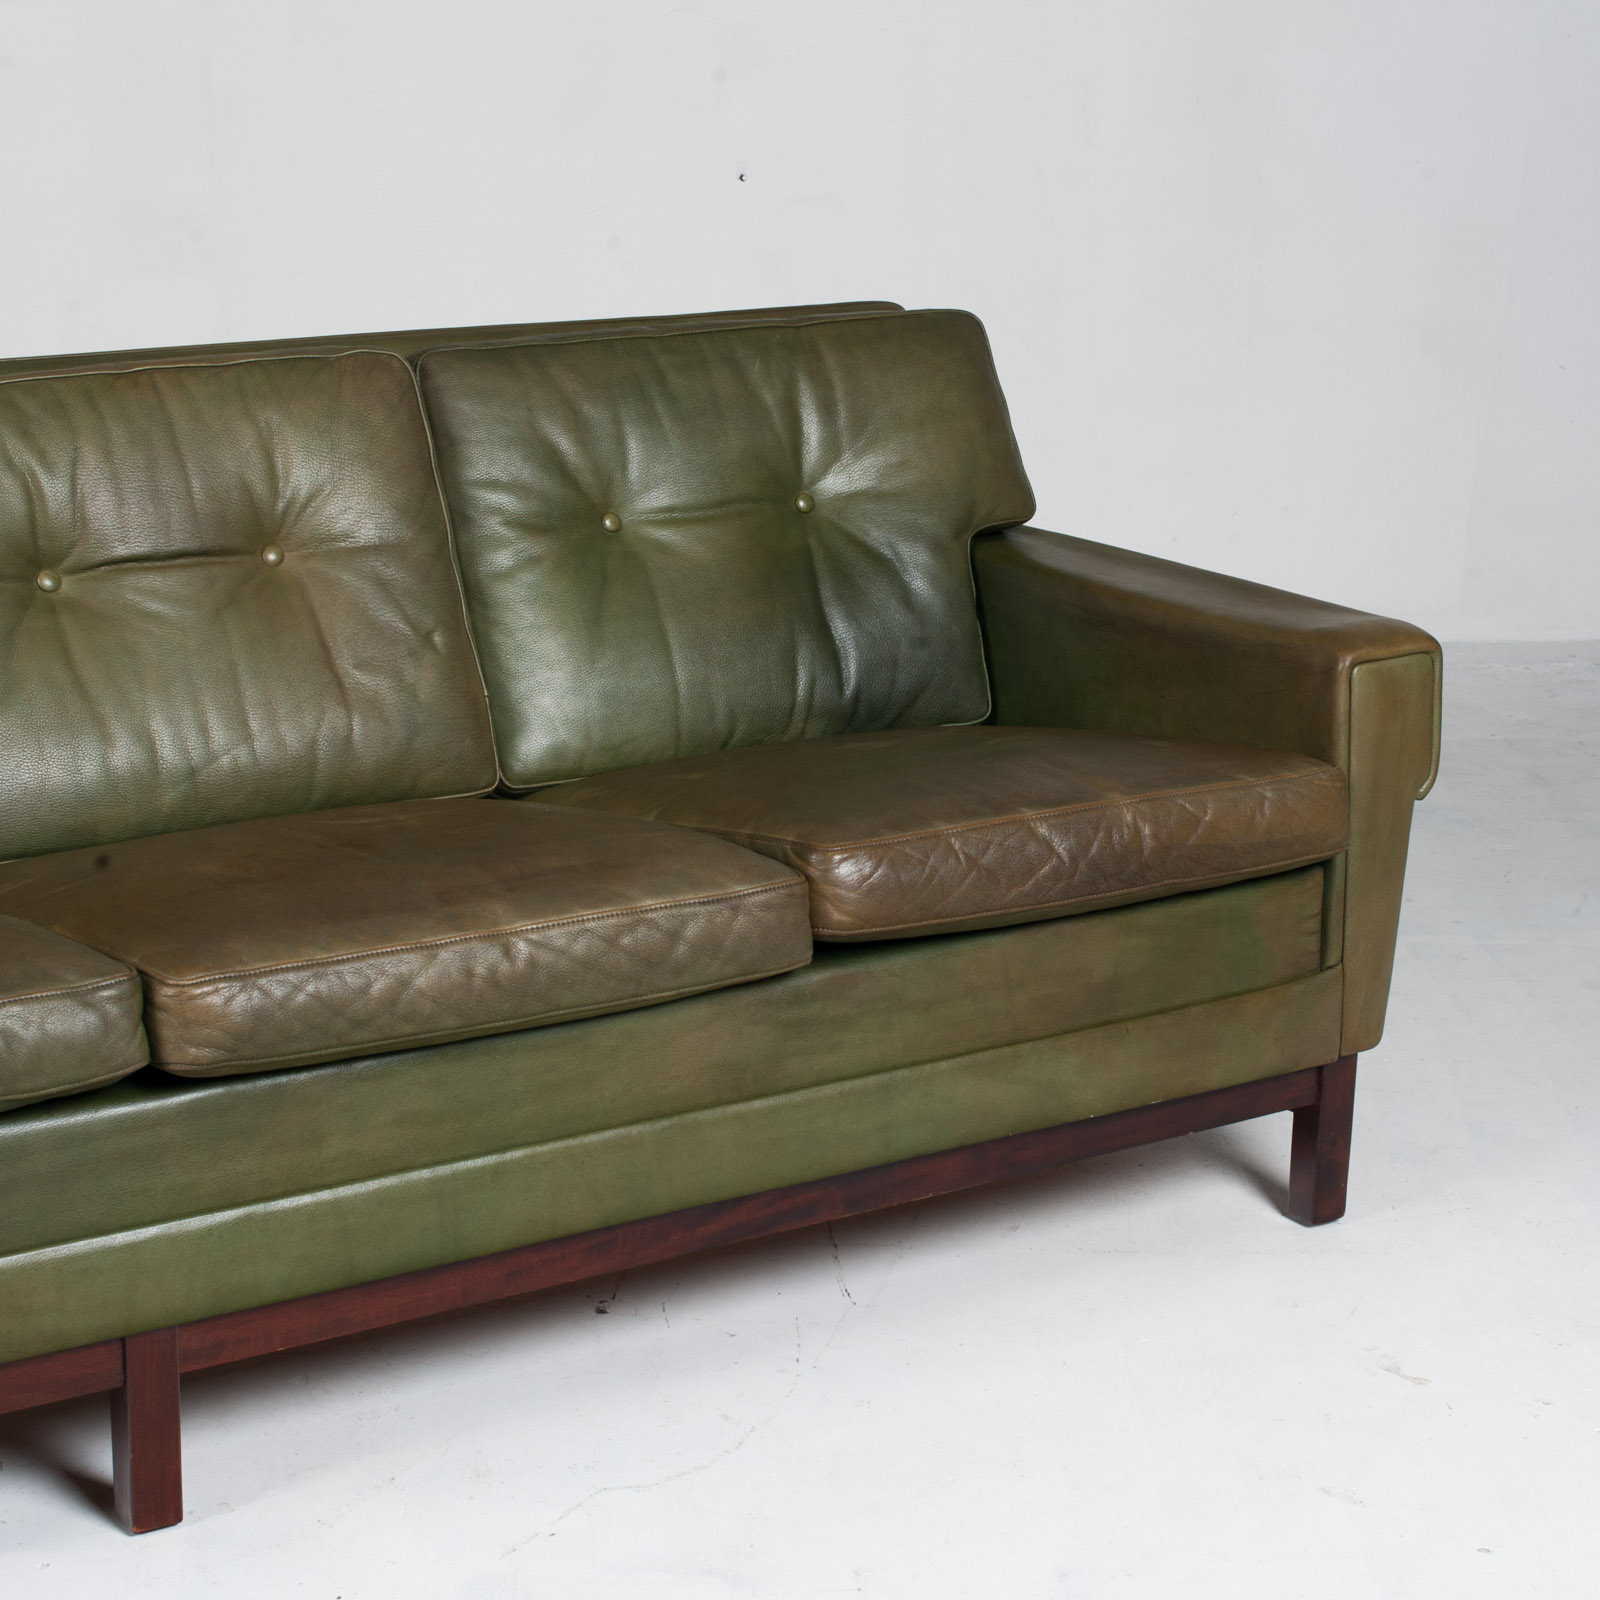 4 Seat Sofa In Olive Leather 1960s Denmark 04